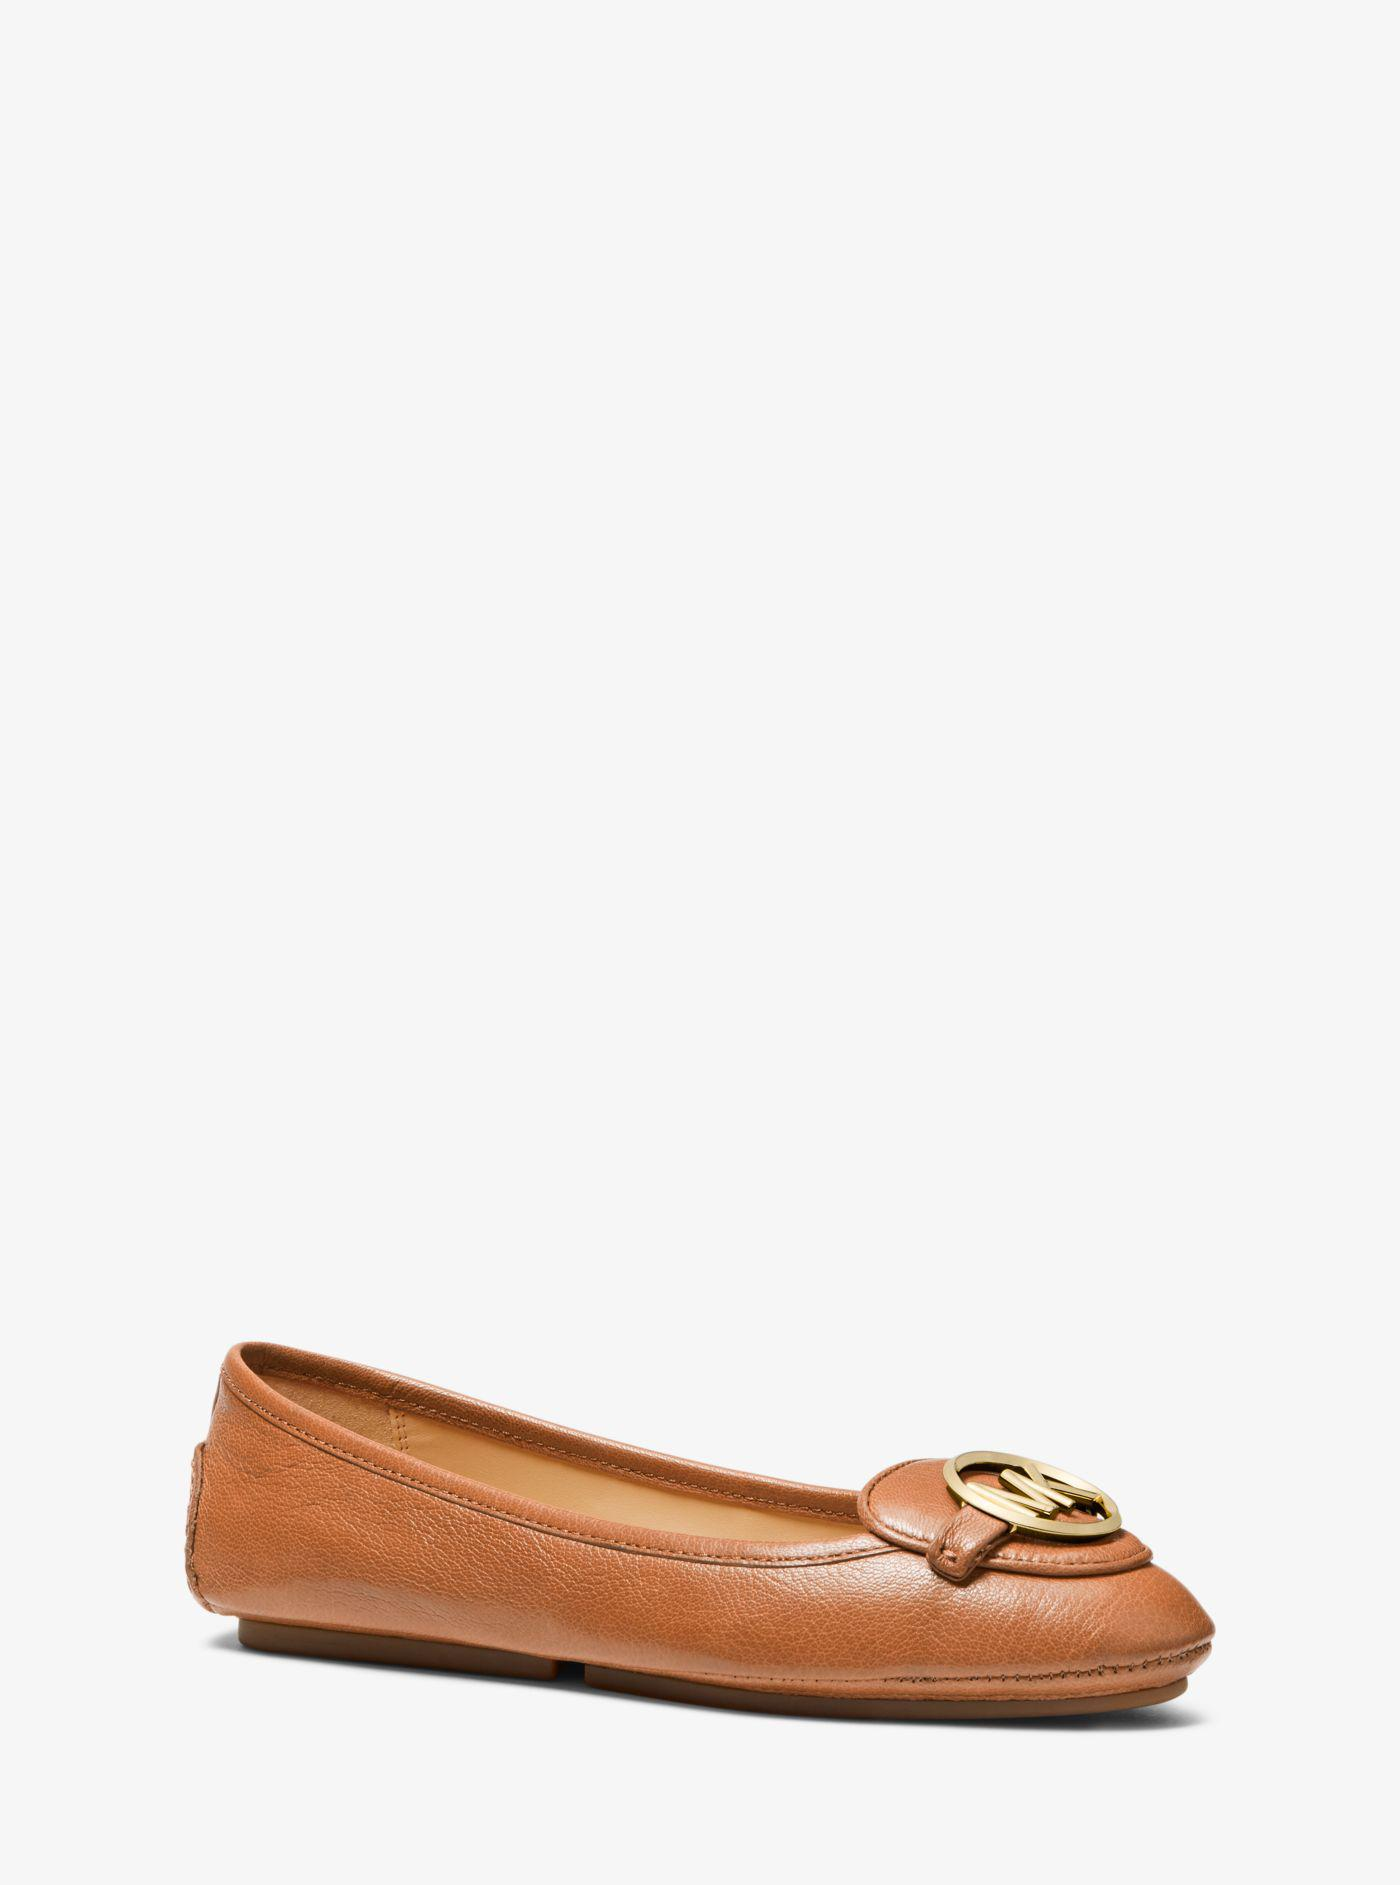 Michael Kors Lillie Leather Moccasin - Lyst